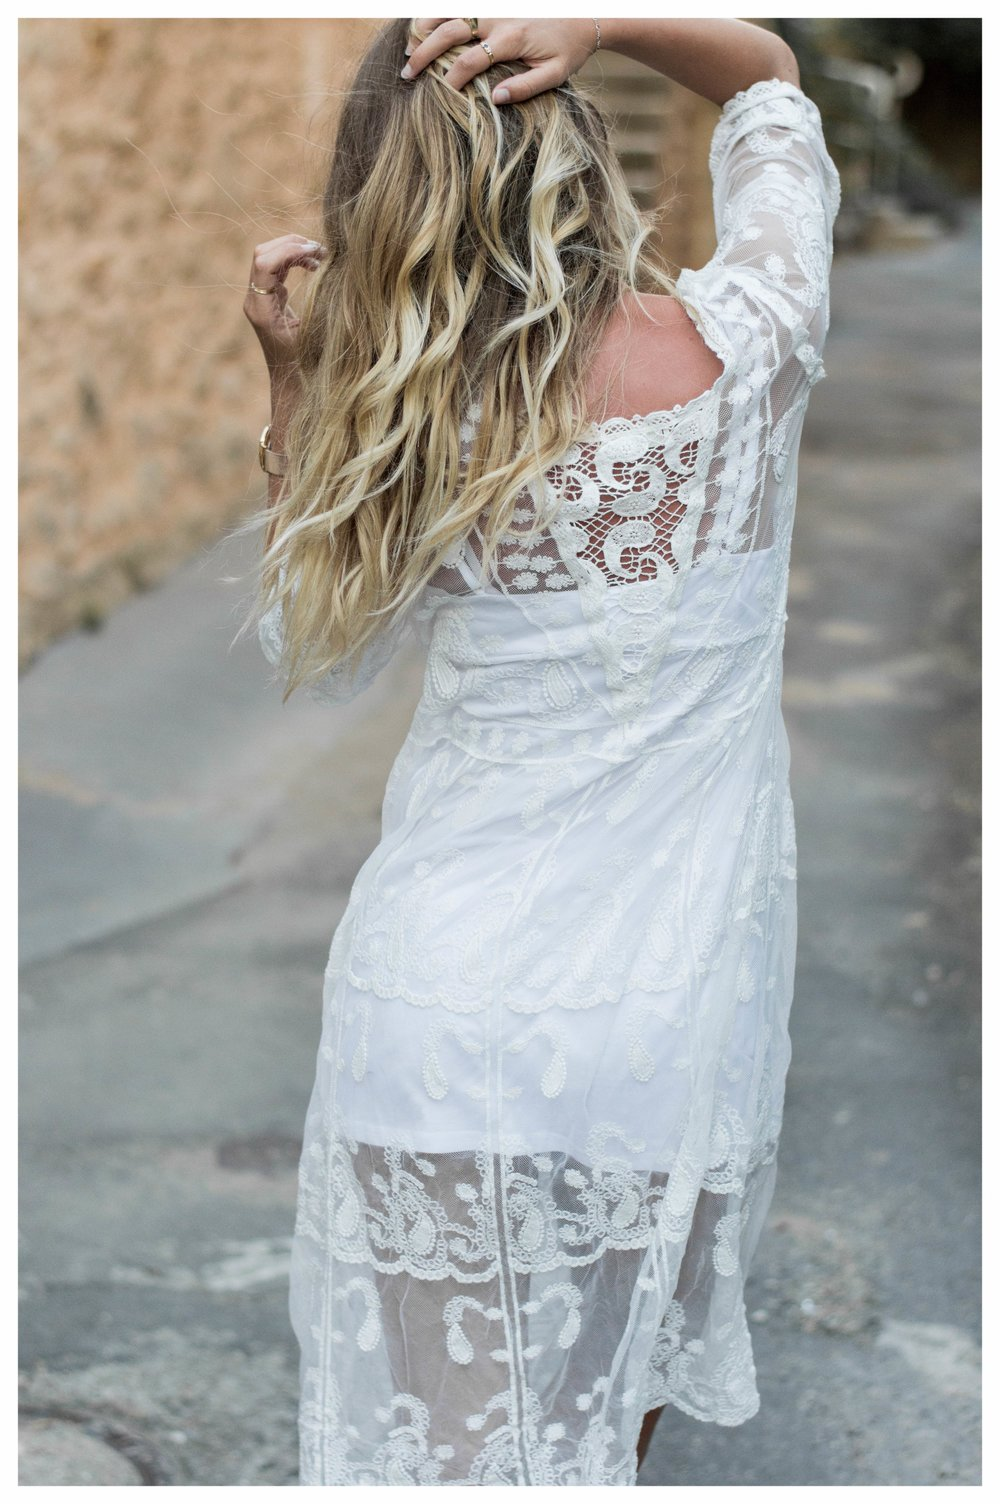 Cornillon White Dress June - OSIARAH.COM (27 of 27).jpg